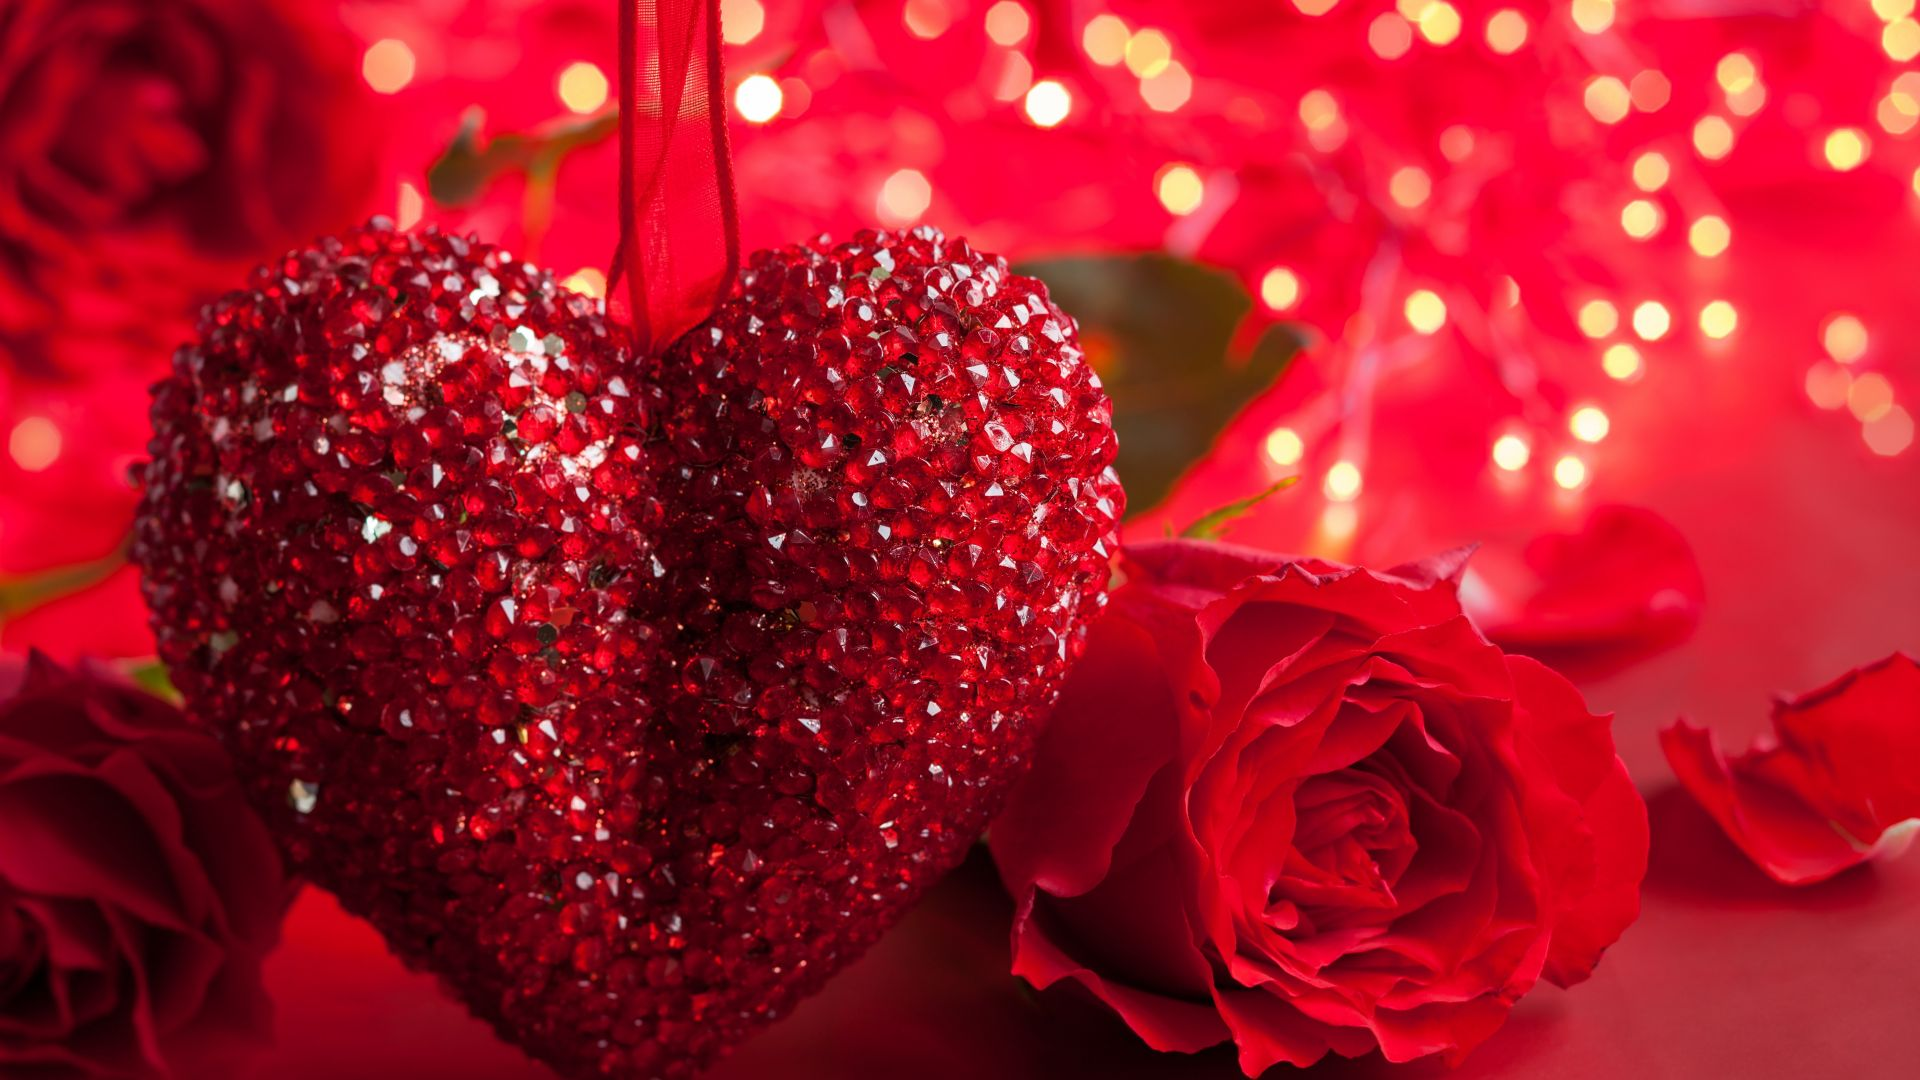 Rose, heart, Valentine's Day, love, romance, red, romantic